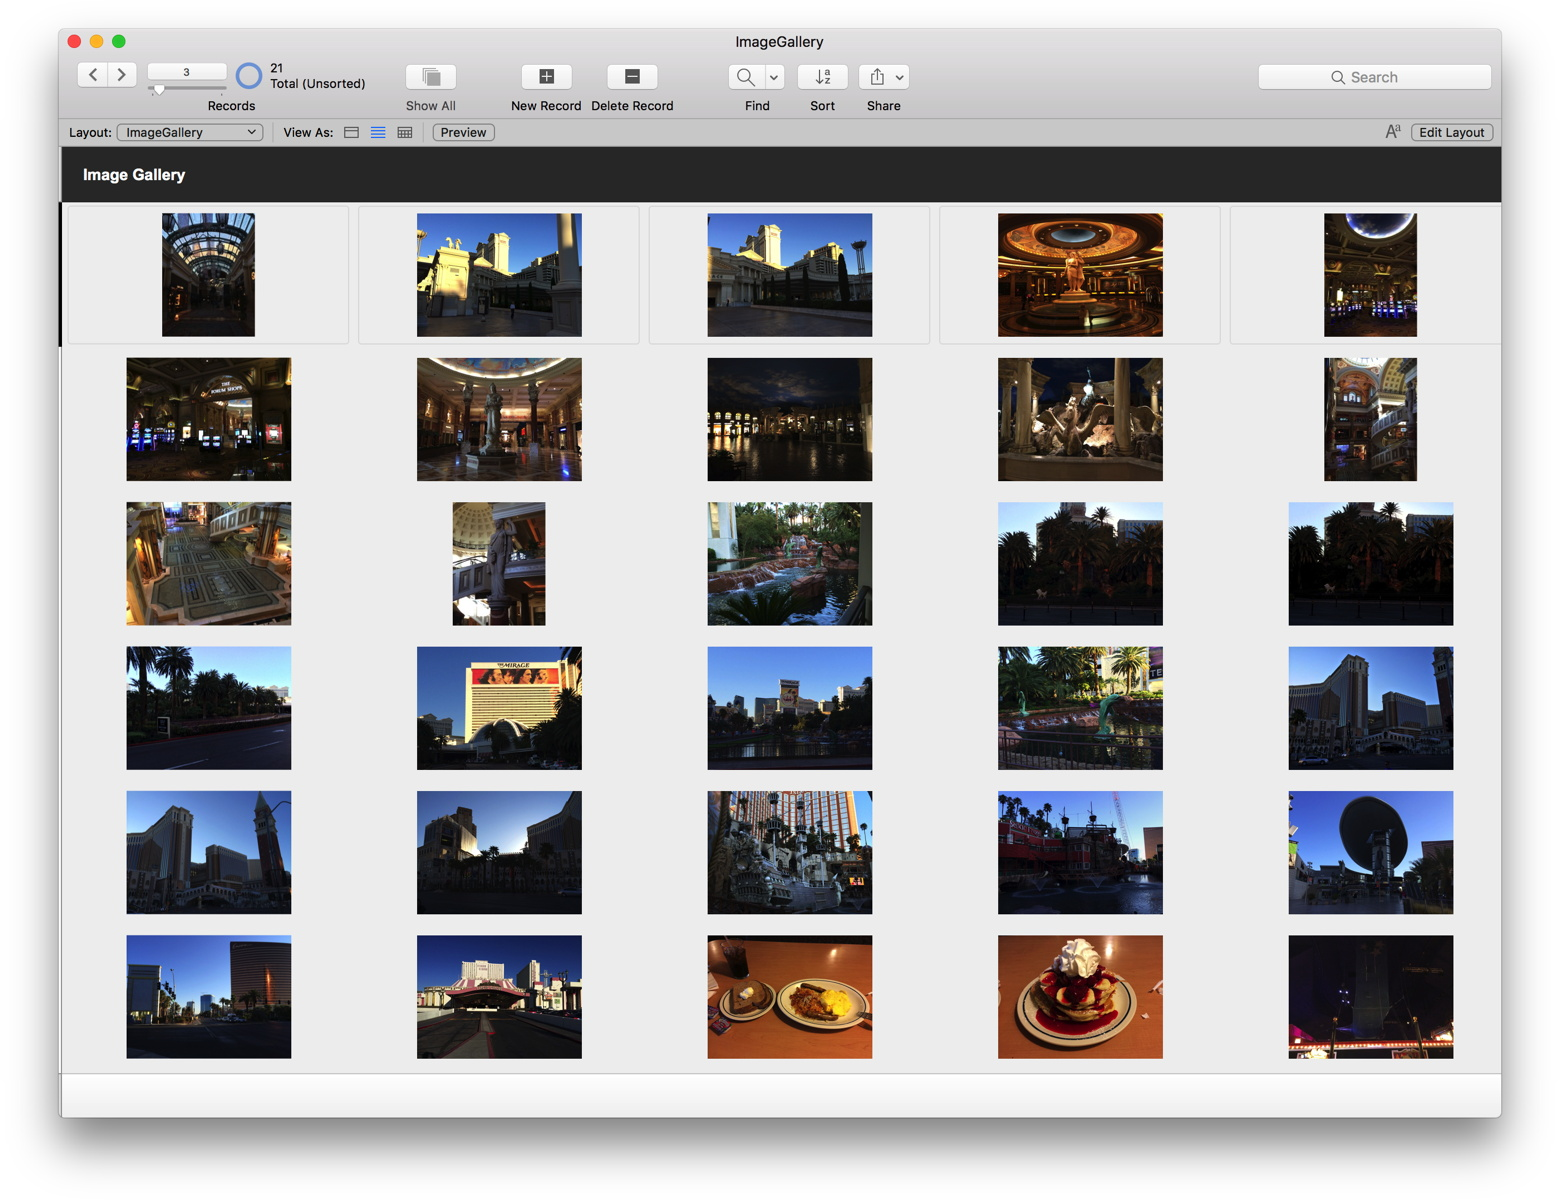 MBS Blog - Image Gallery in FileMaker using SQL